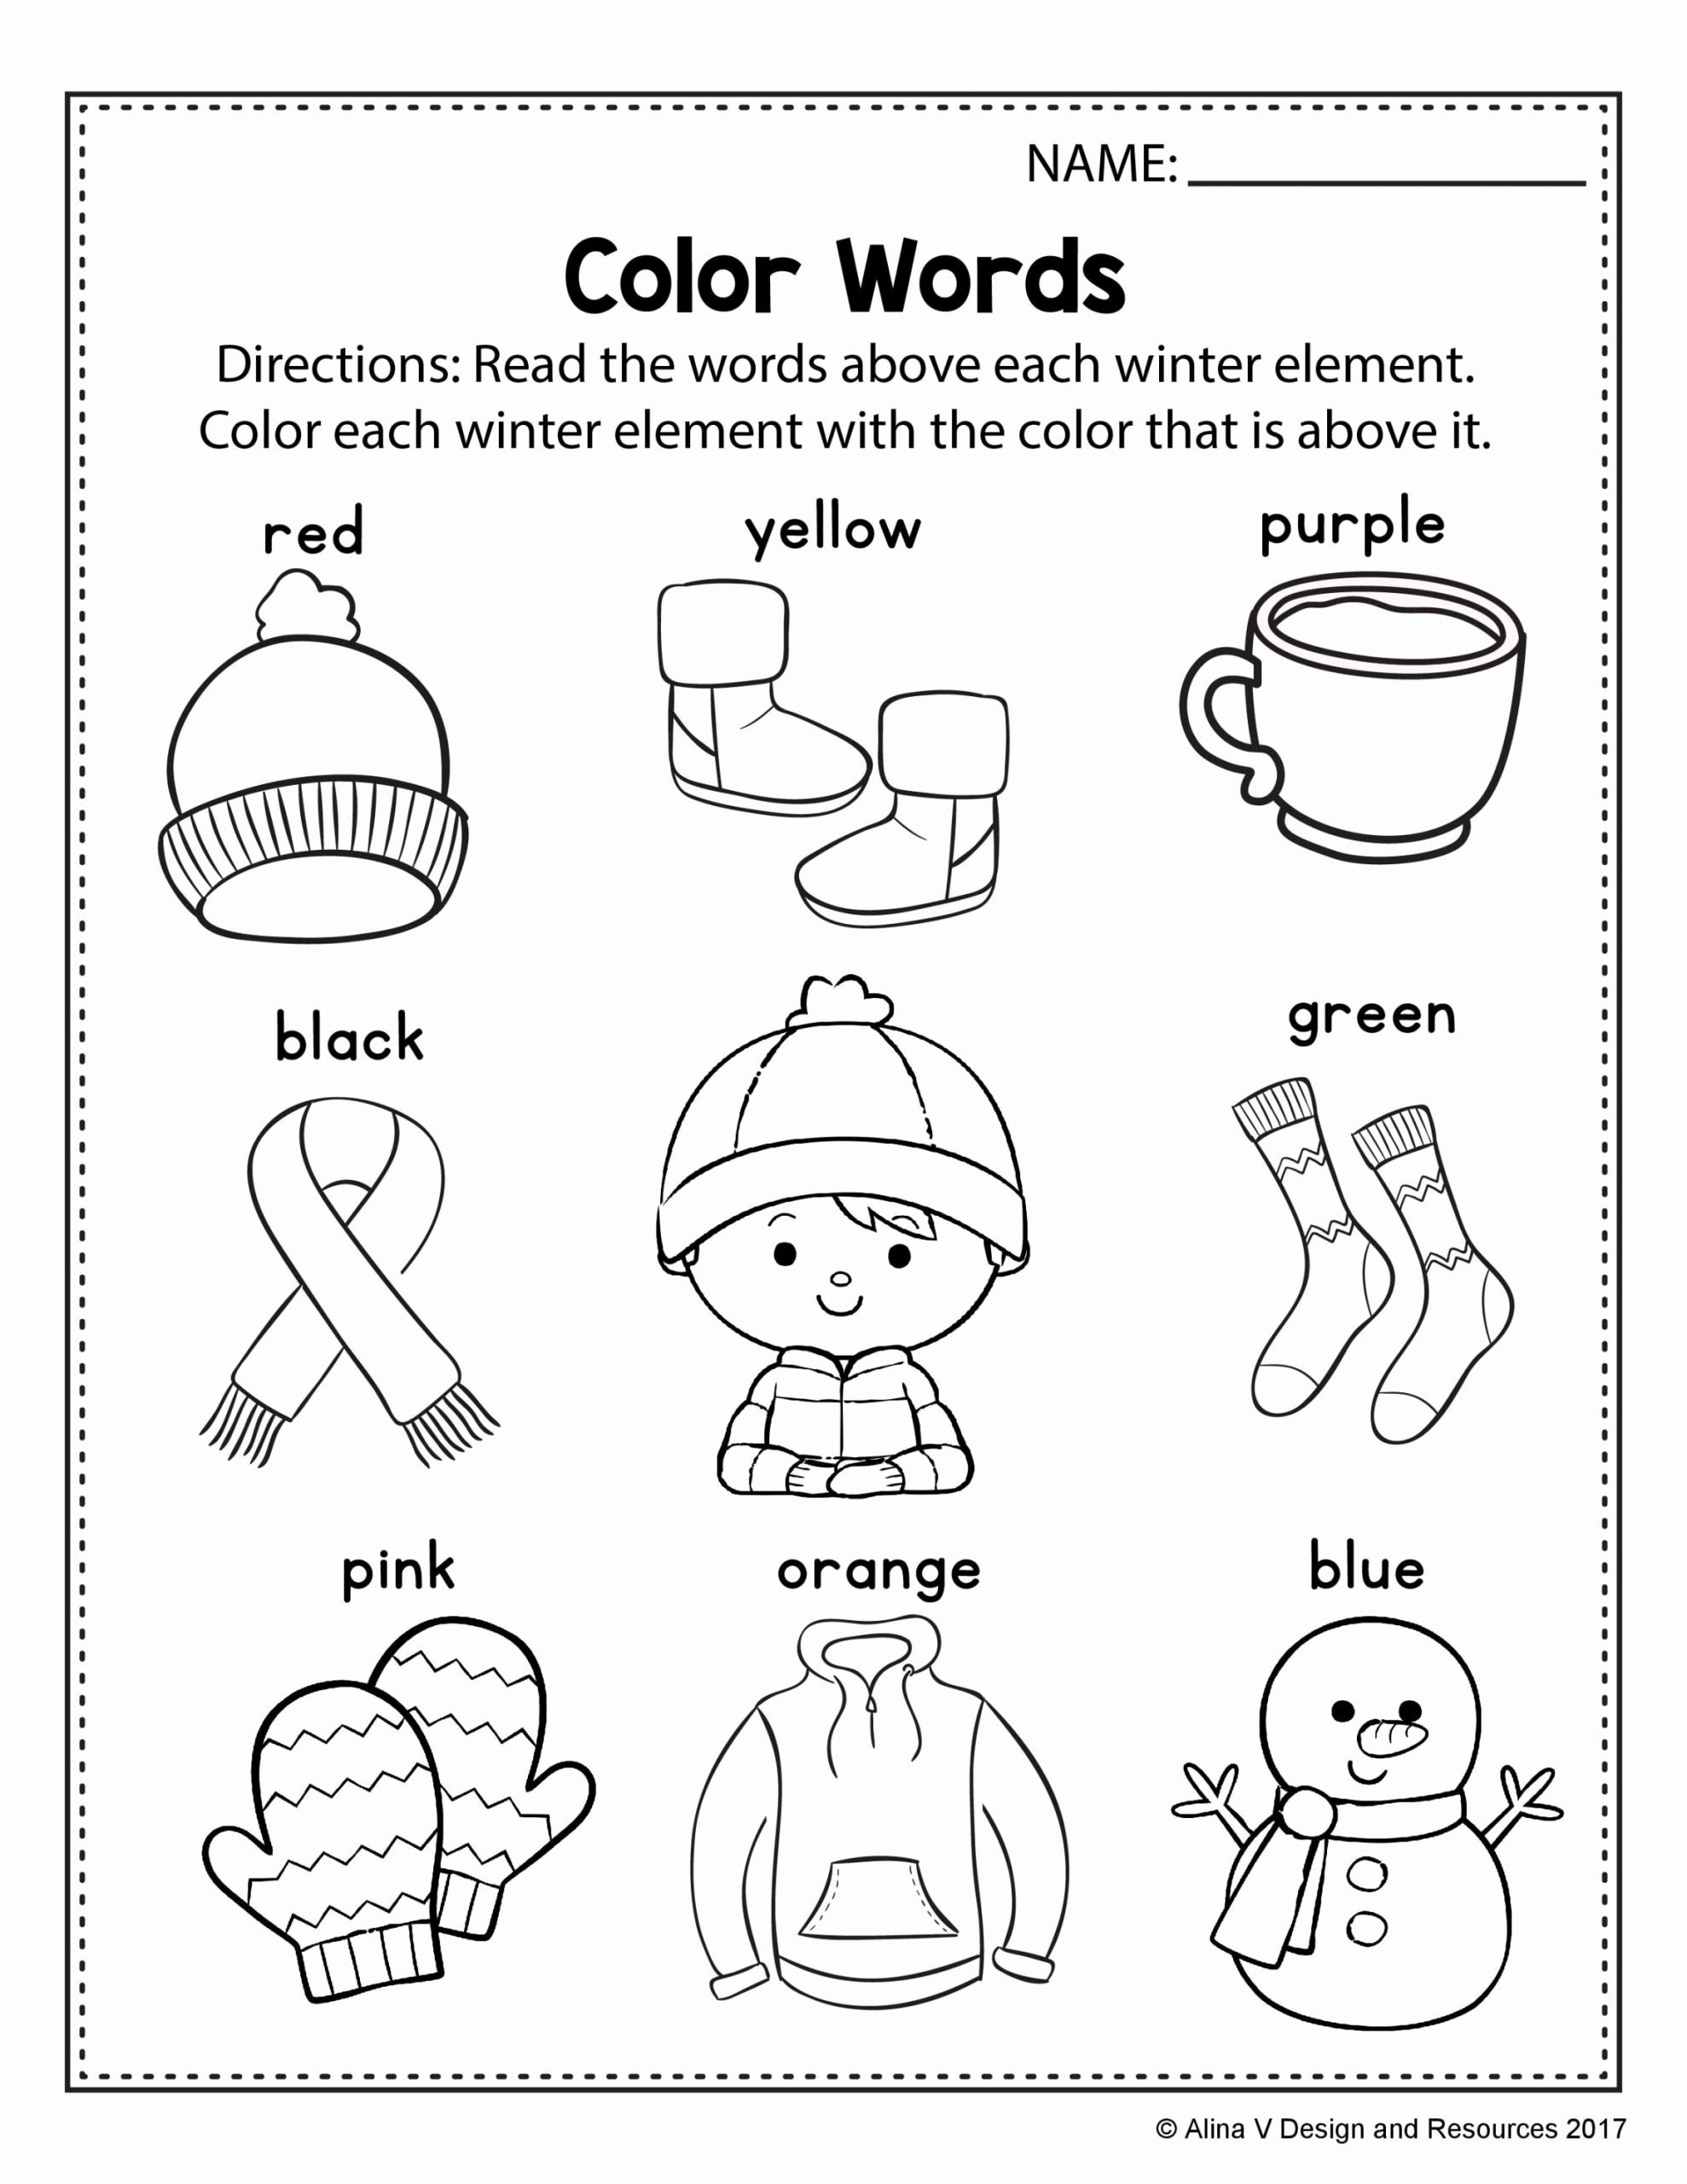 Free Winter Worksheets for Preschoolers Printable Printable Worksheet Cold Winter